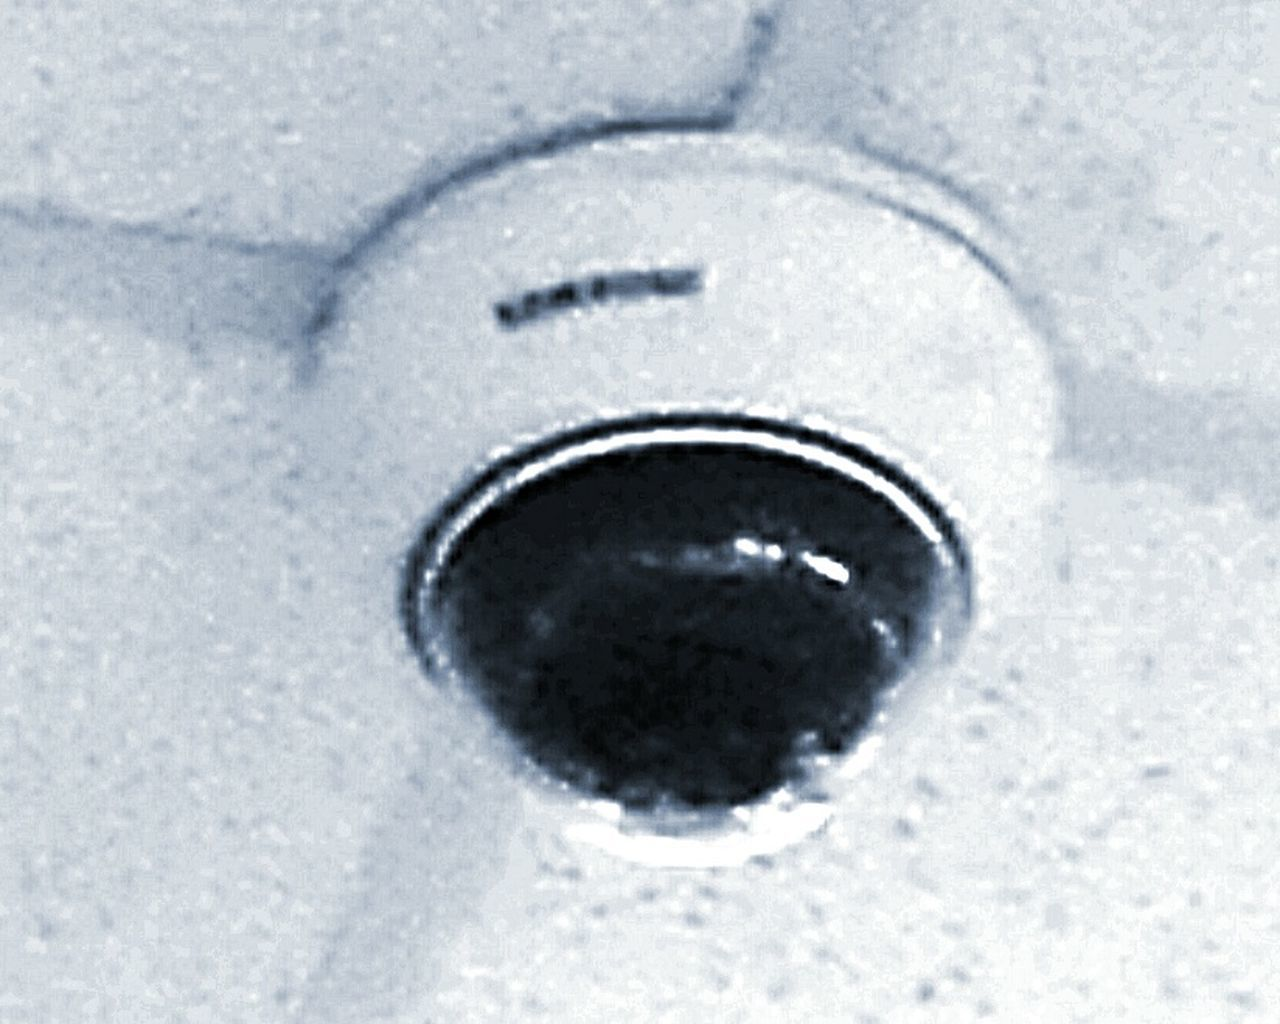 Dome Cameras Samsung Camera Samsung Cam Securitycam Big Brother Is Watching Big Brother Is Watching You Surveillance Camera Closed Circuit Tv Closed Circuit Camera Security Cam Surveillance Security Security Camera Camera Surveillance Camera Porn Surveillancecameras Securitycamera Dome Surveillance Cam Cctv Big Brother Securitycameras Security System ClosedCircuitCameras Under Constant Surveillance ClosedCircuitCamera